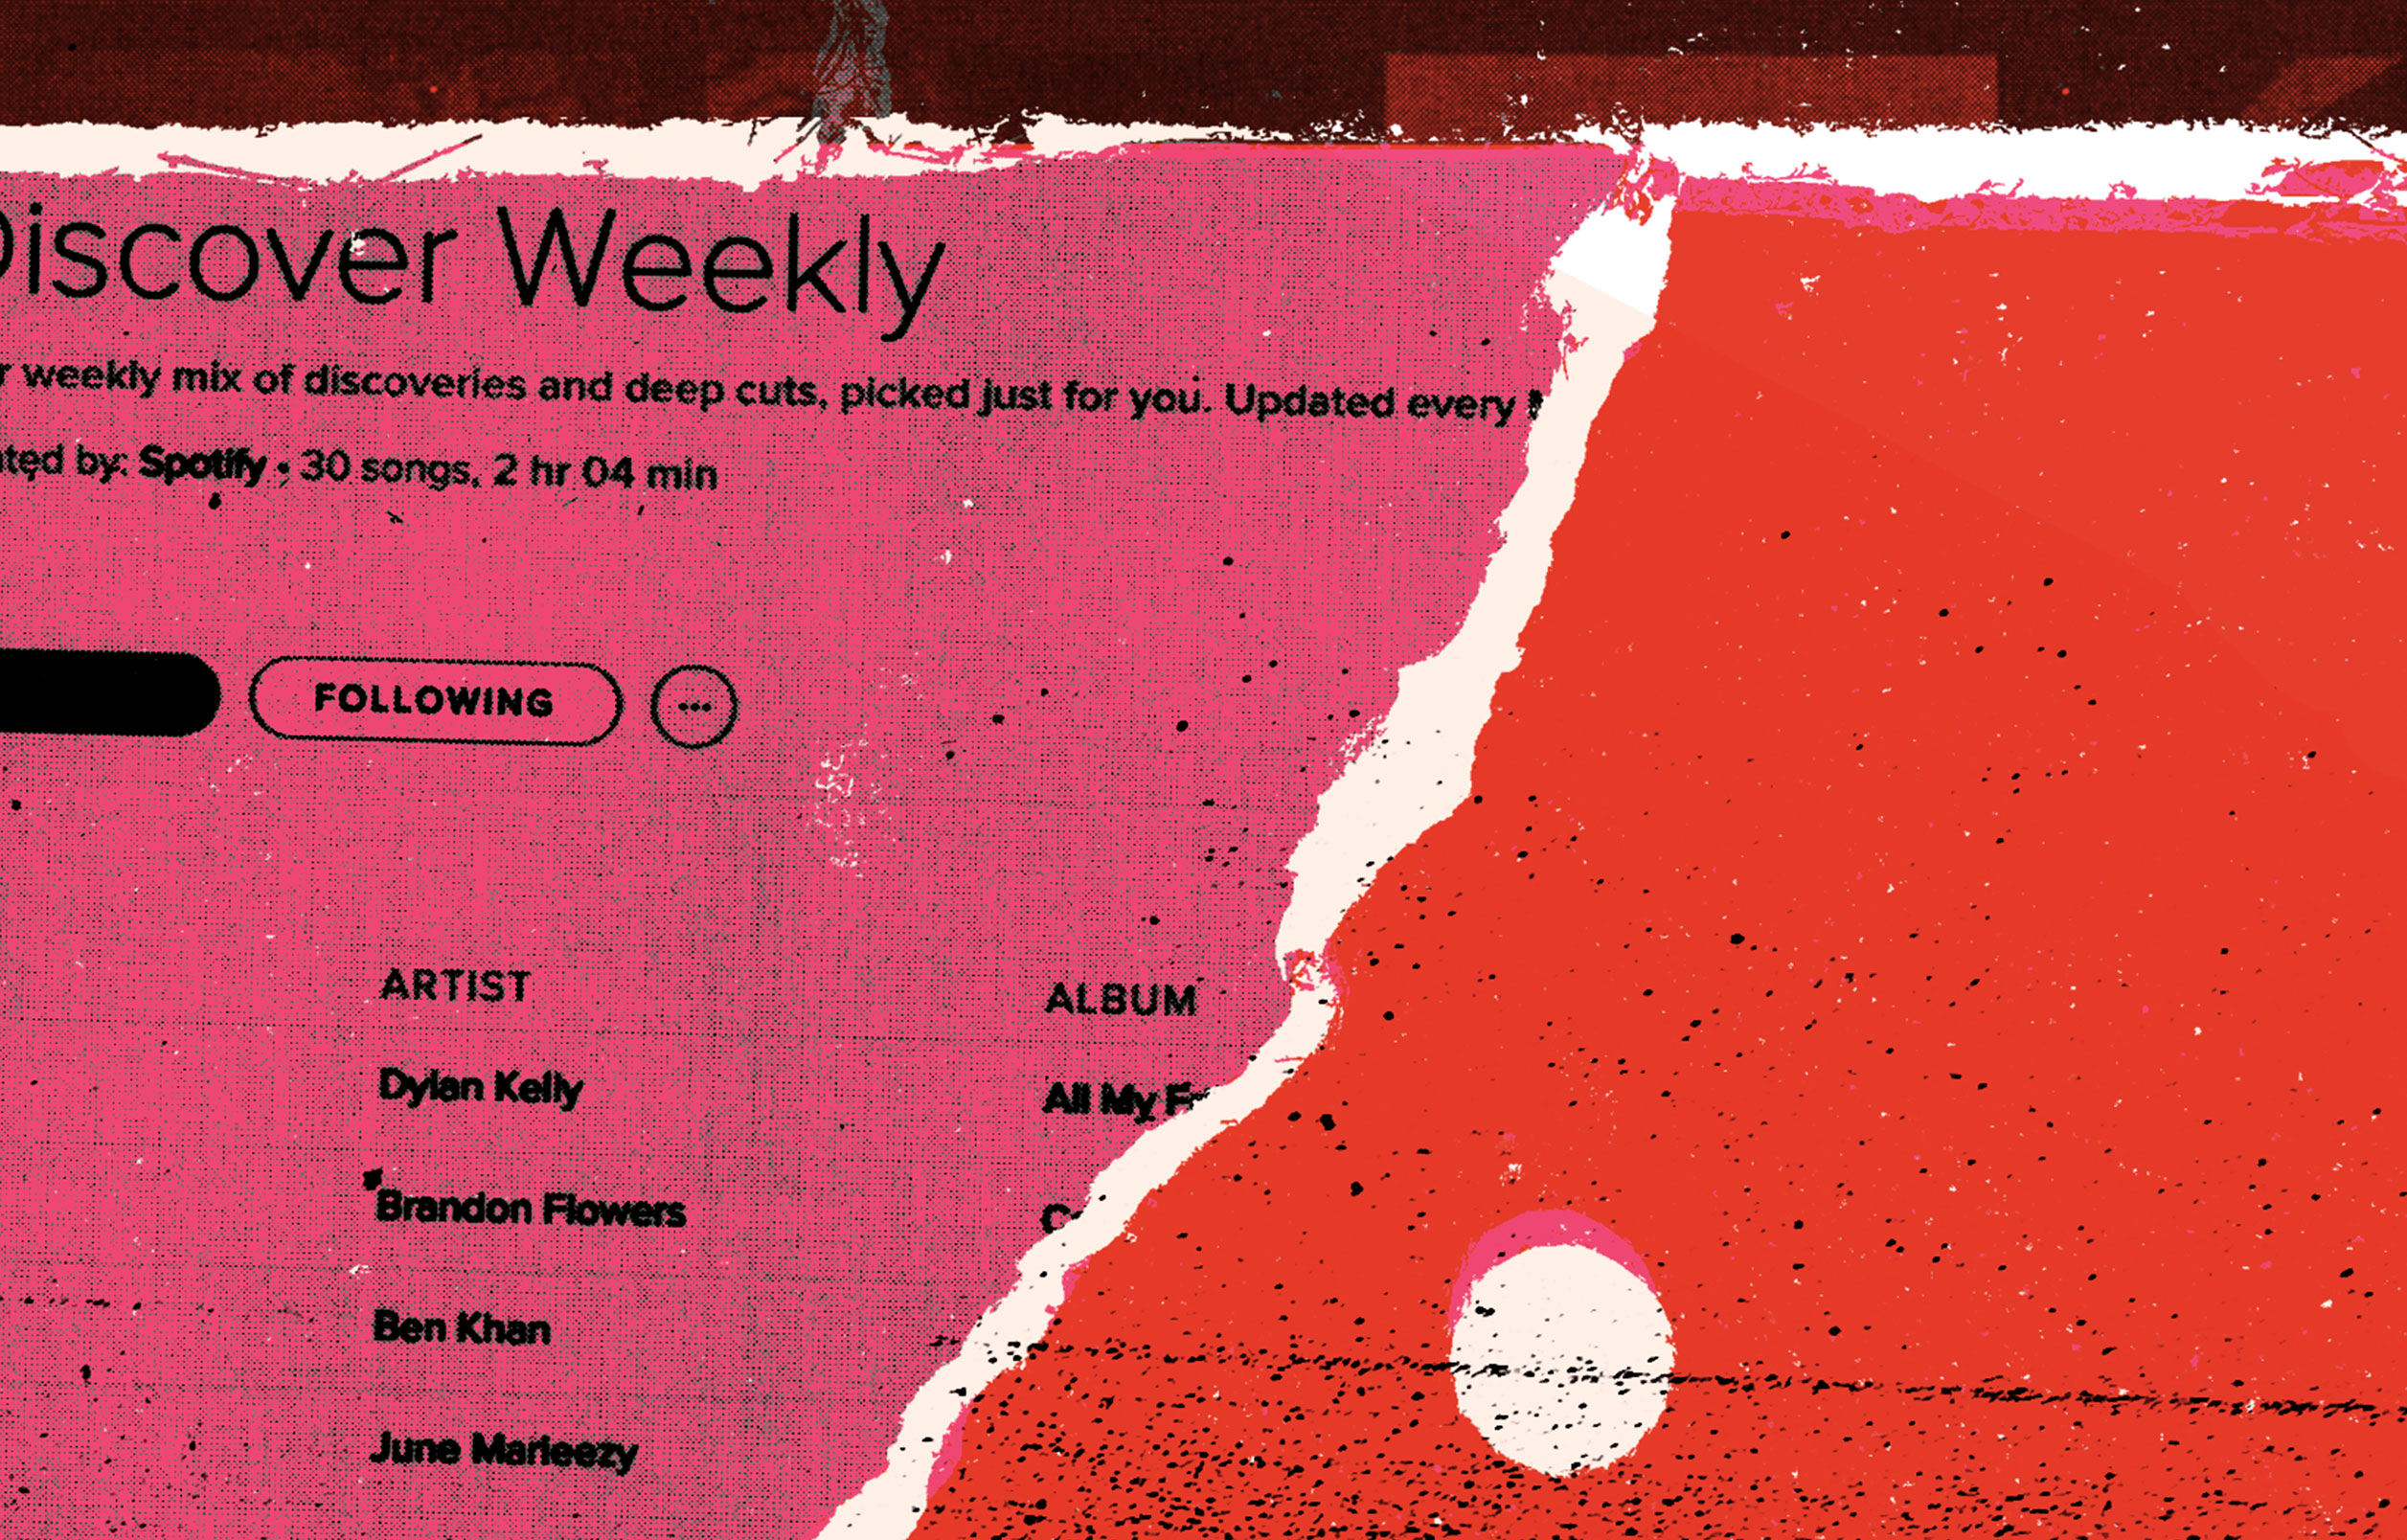 pink and red, textured illustration of collaged music playlist images